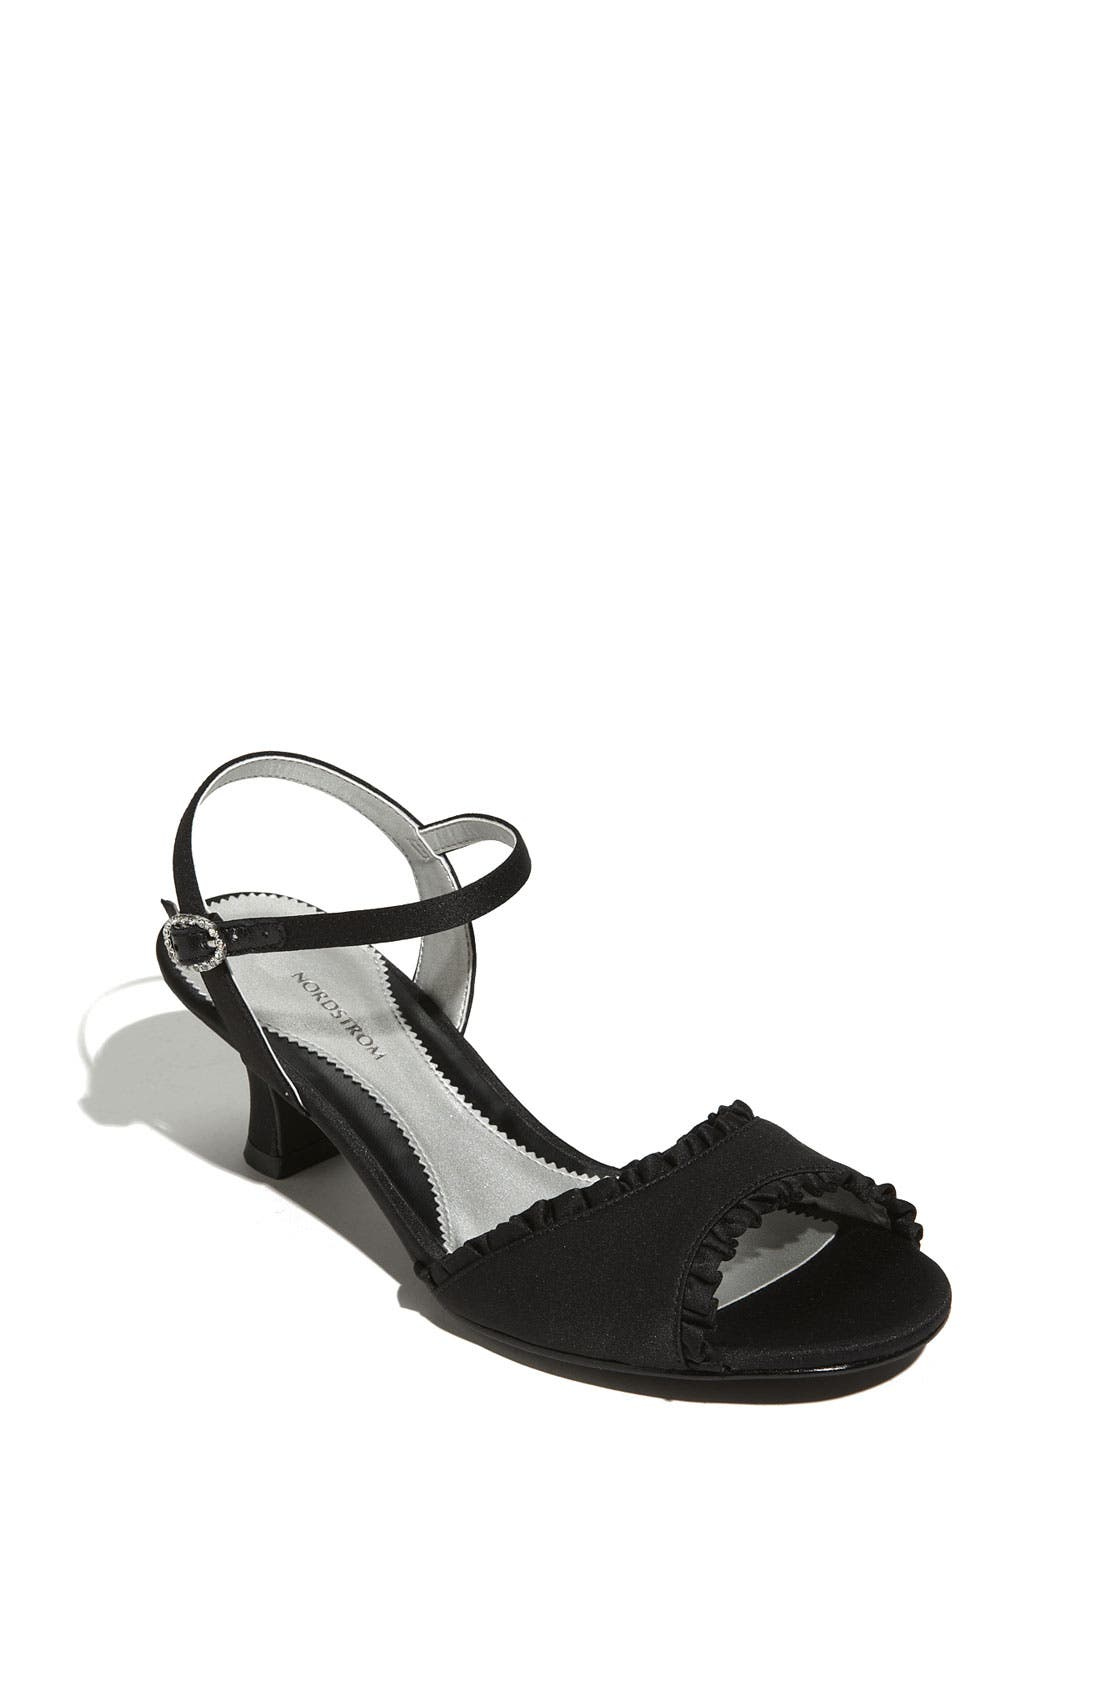 Alternate Image 1 Selected - Nordstrom 'Kayleigh' Sandal (Little Kid & Big Kid)